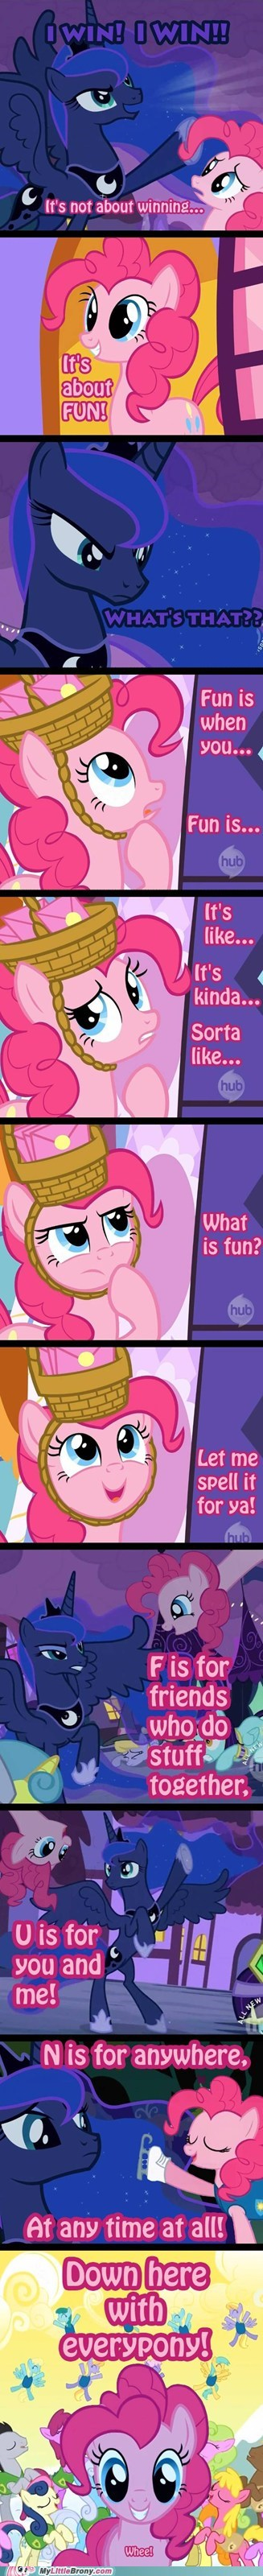 fun,comics,SpongeBob SquarePants,pinkie pie,luna